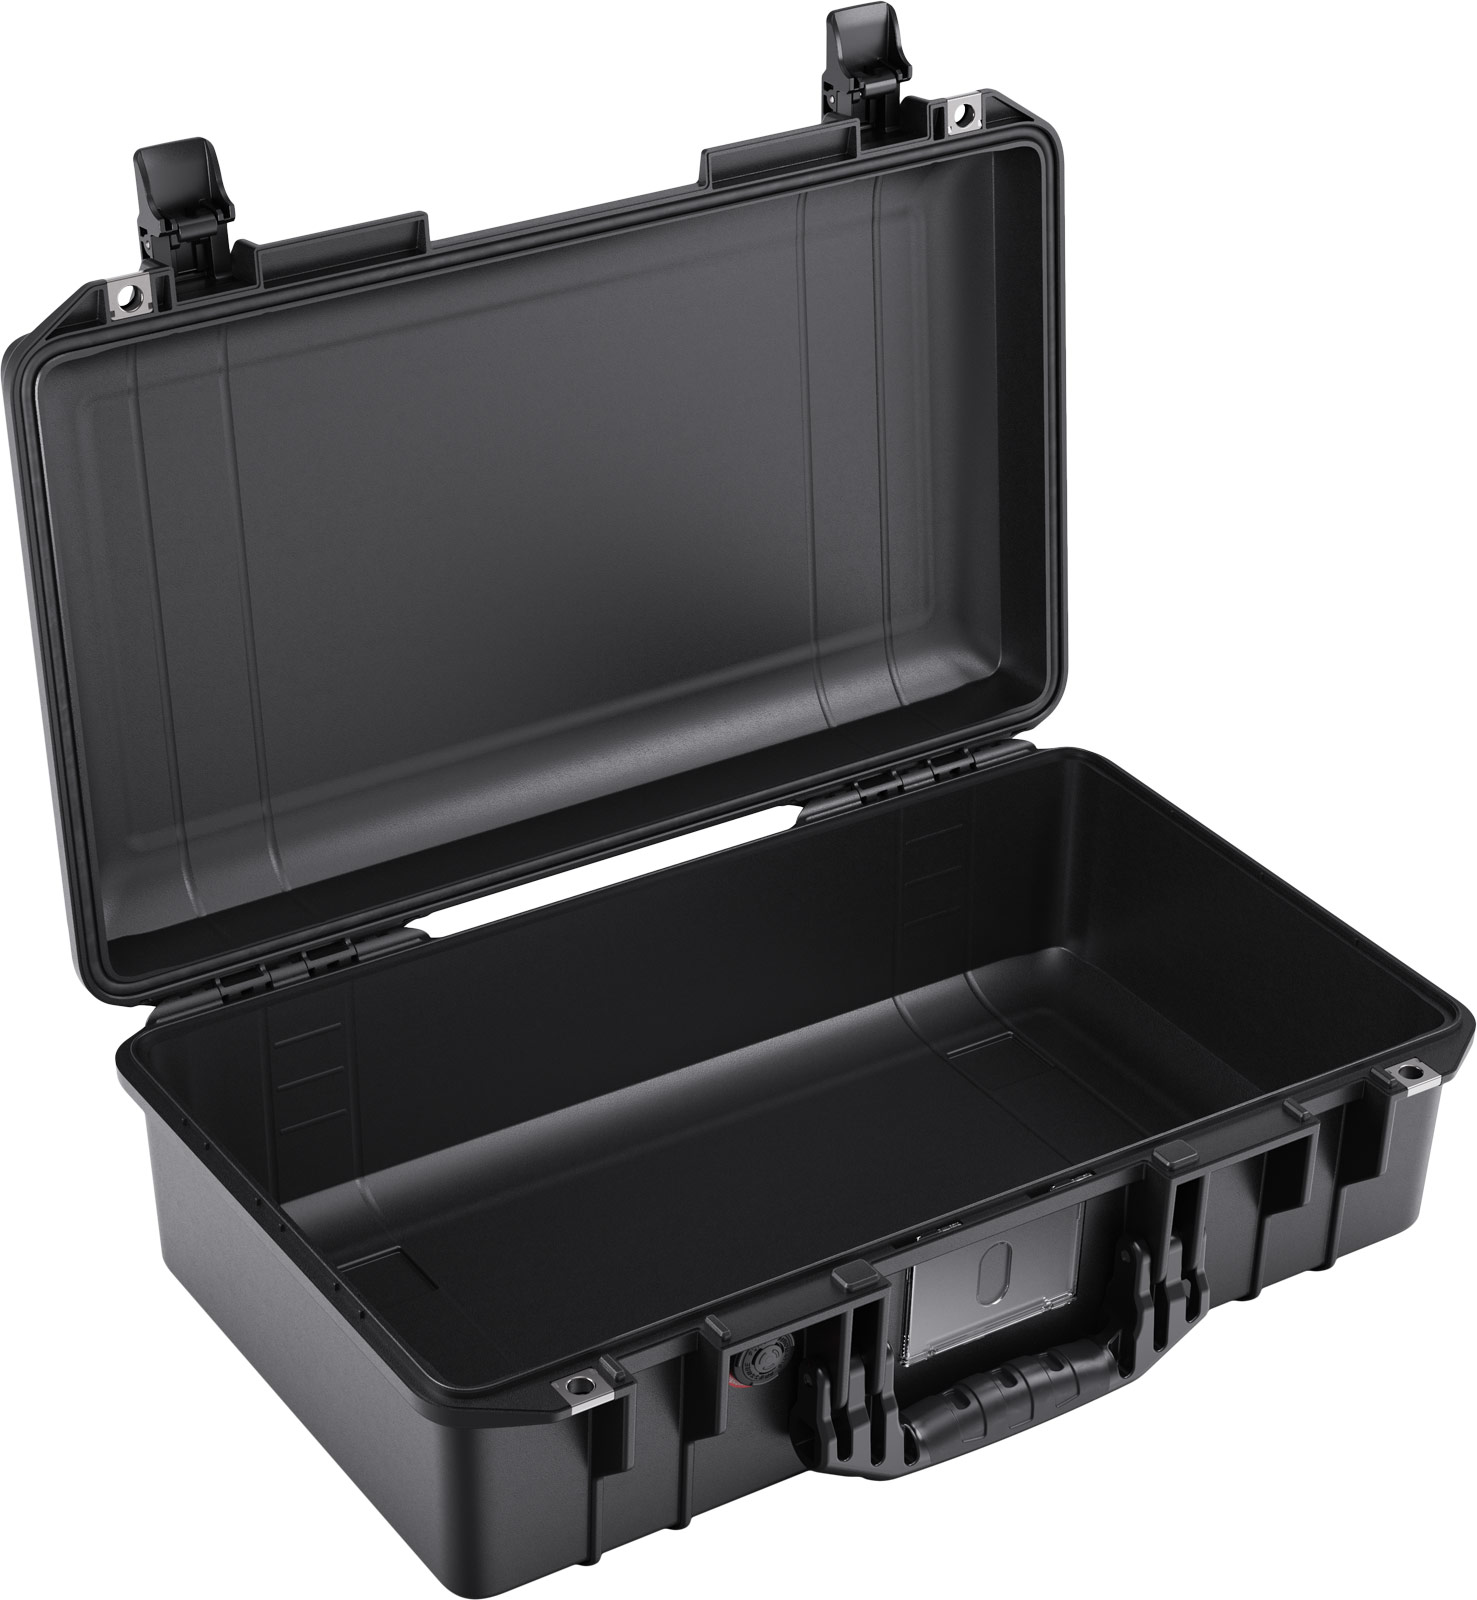 pelican air 1525nf case lightweight travel